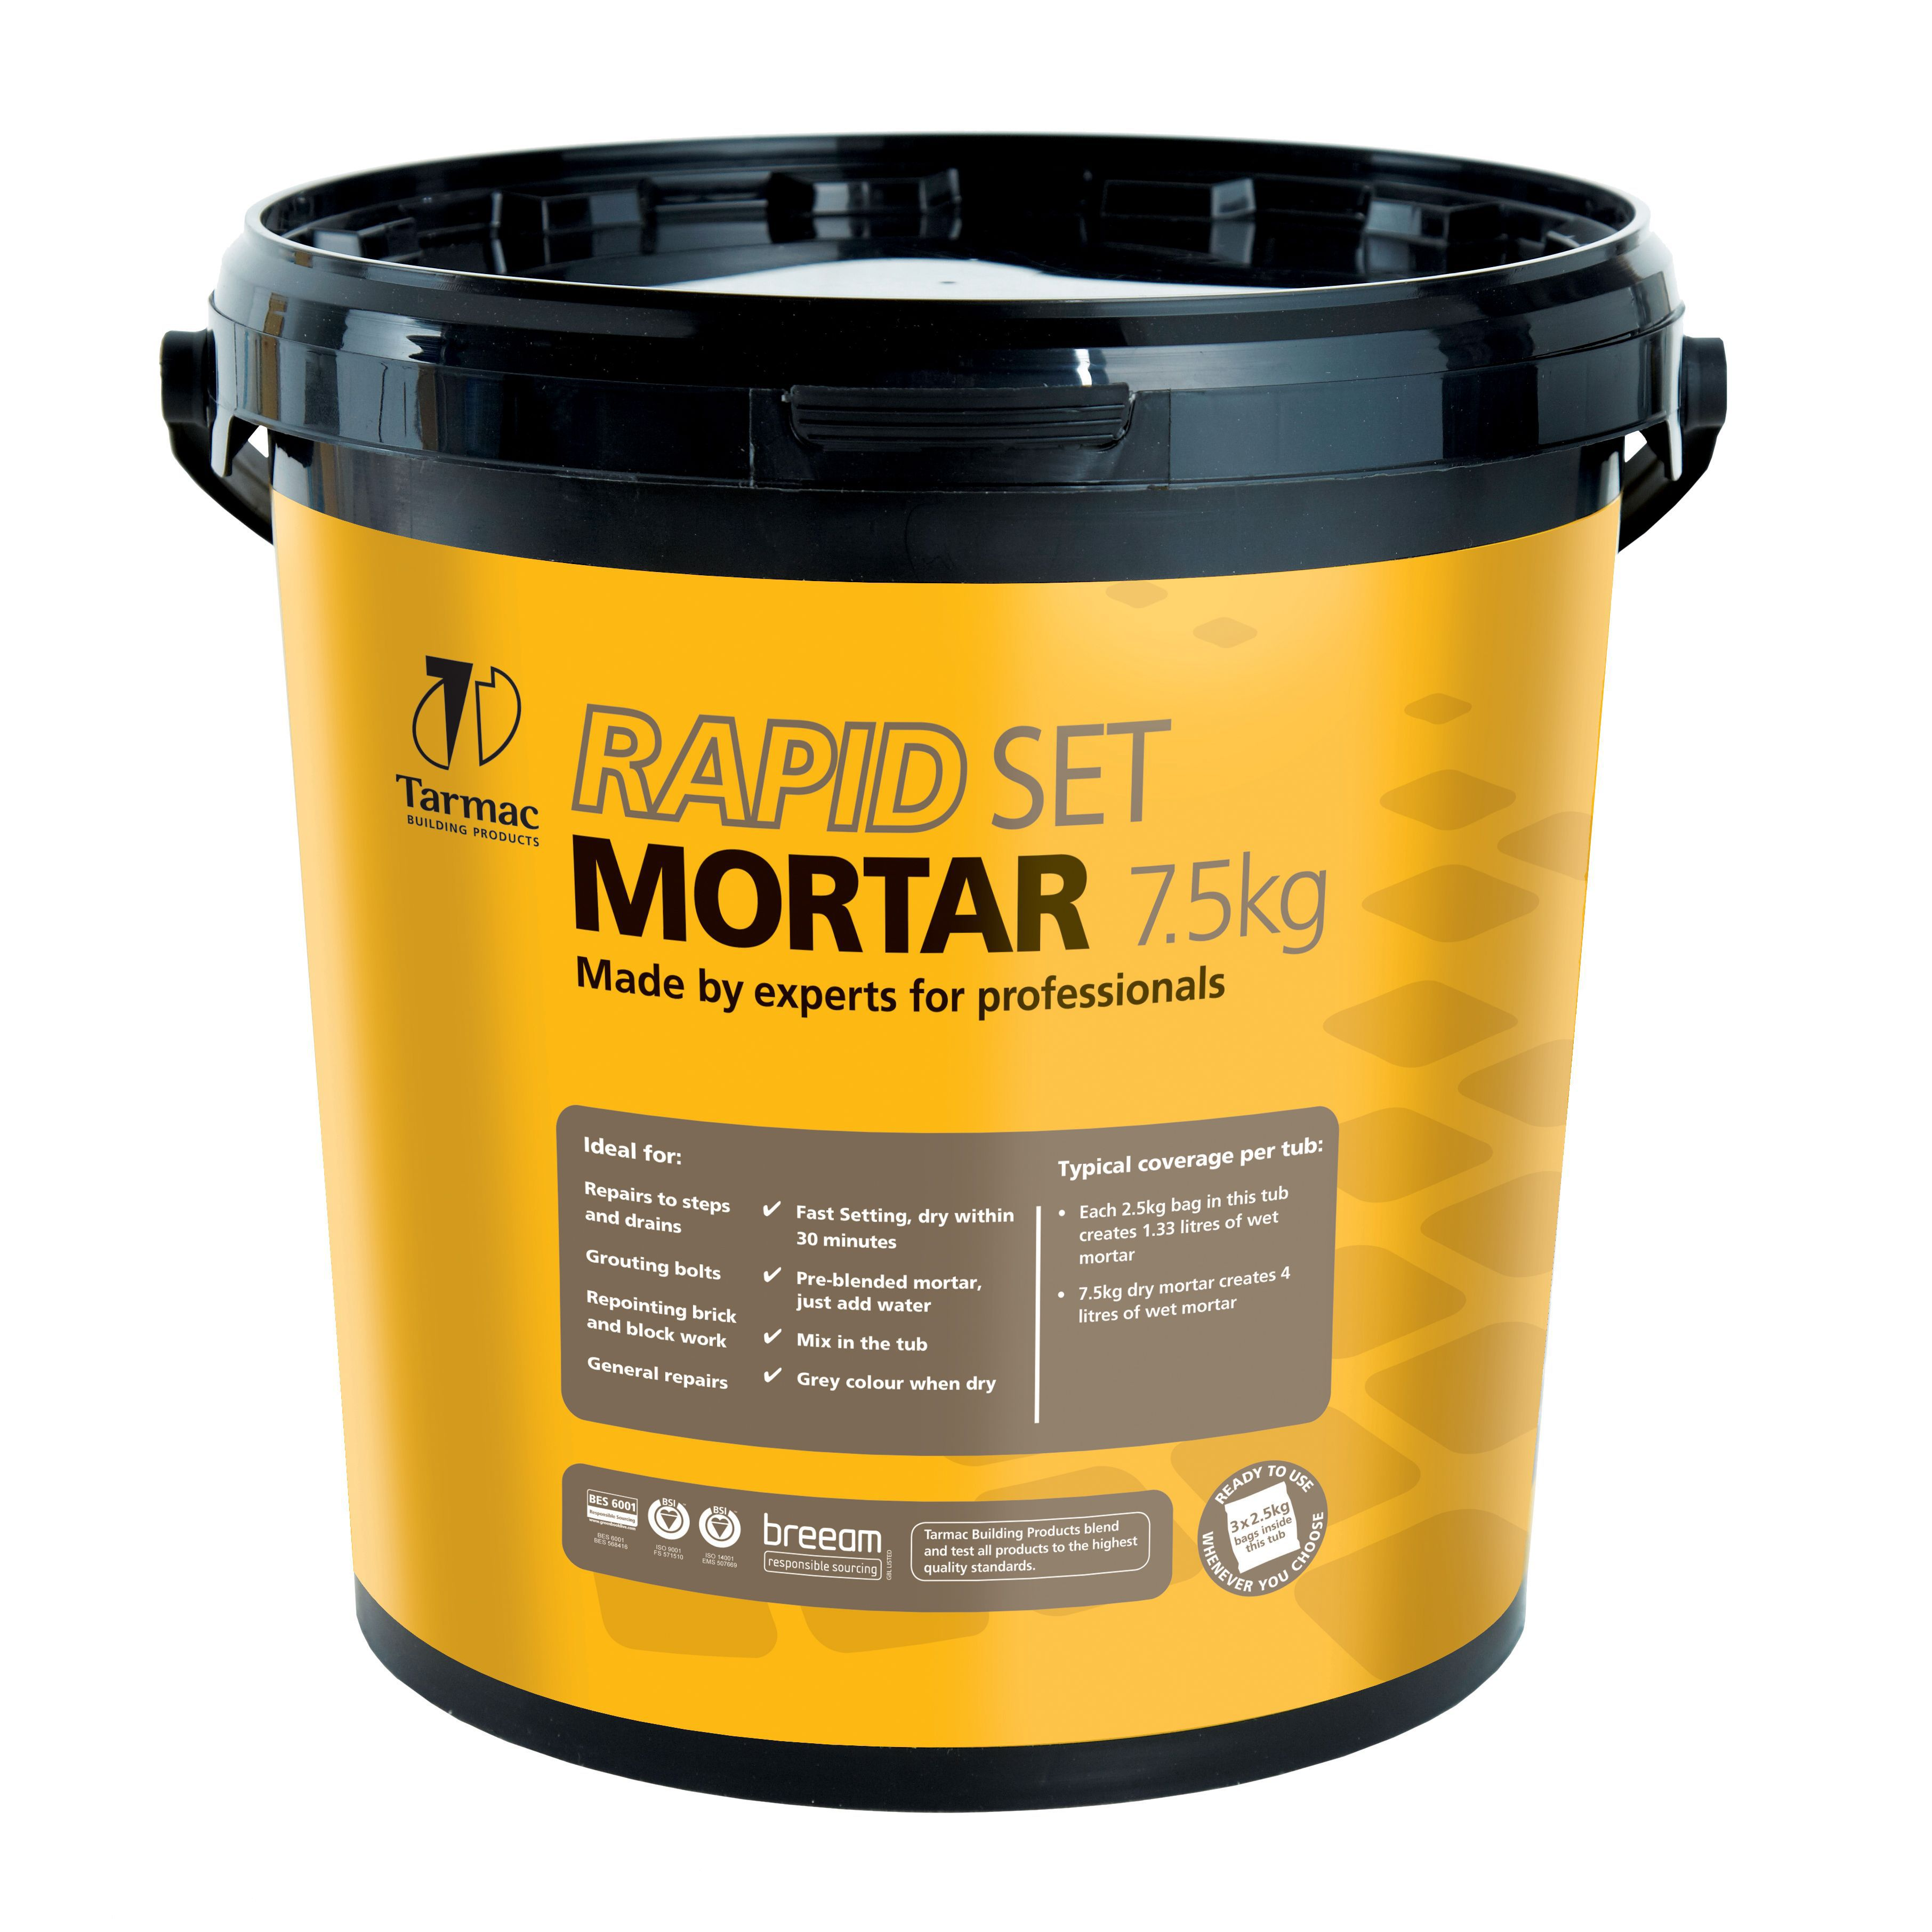 Tarmac Cempak Ready to Use Mortar 75kg Plastic Tub Departments